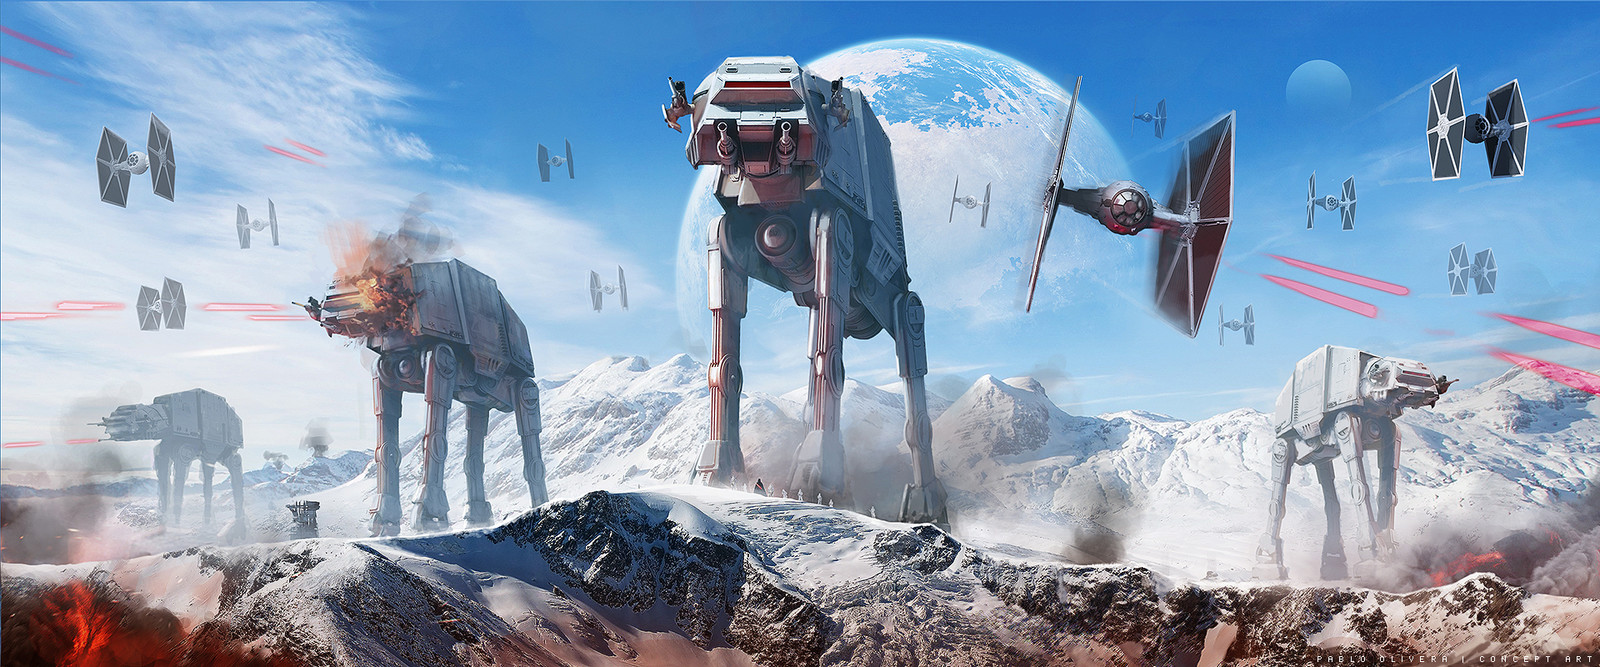 Star Wars, Battle of Hoth